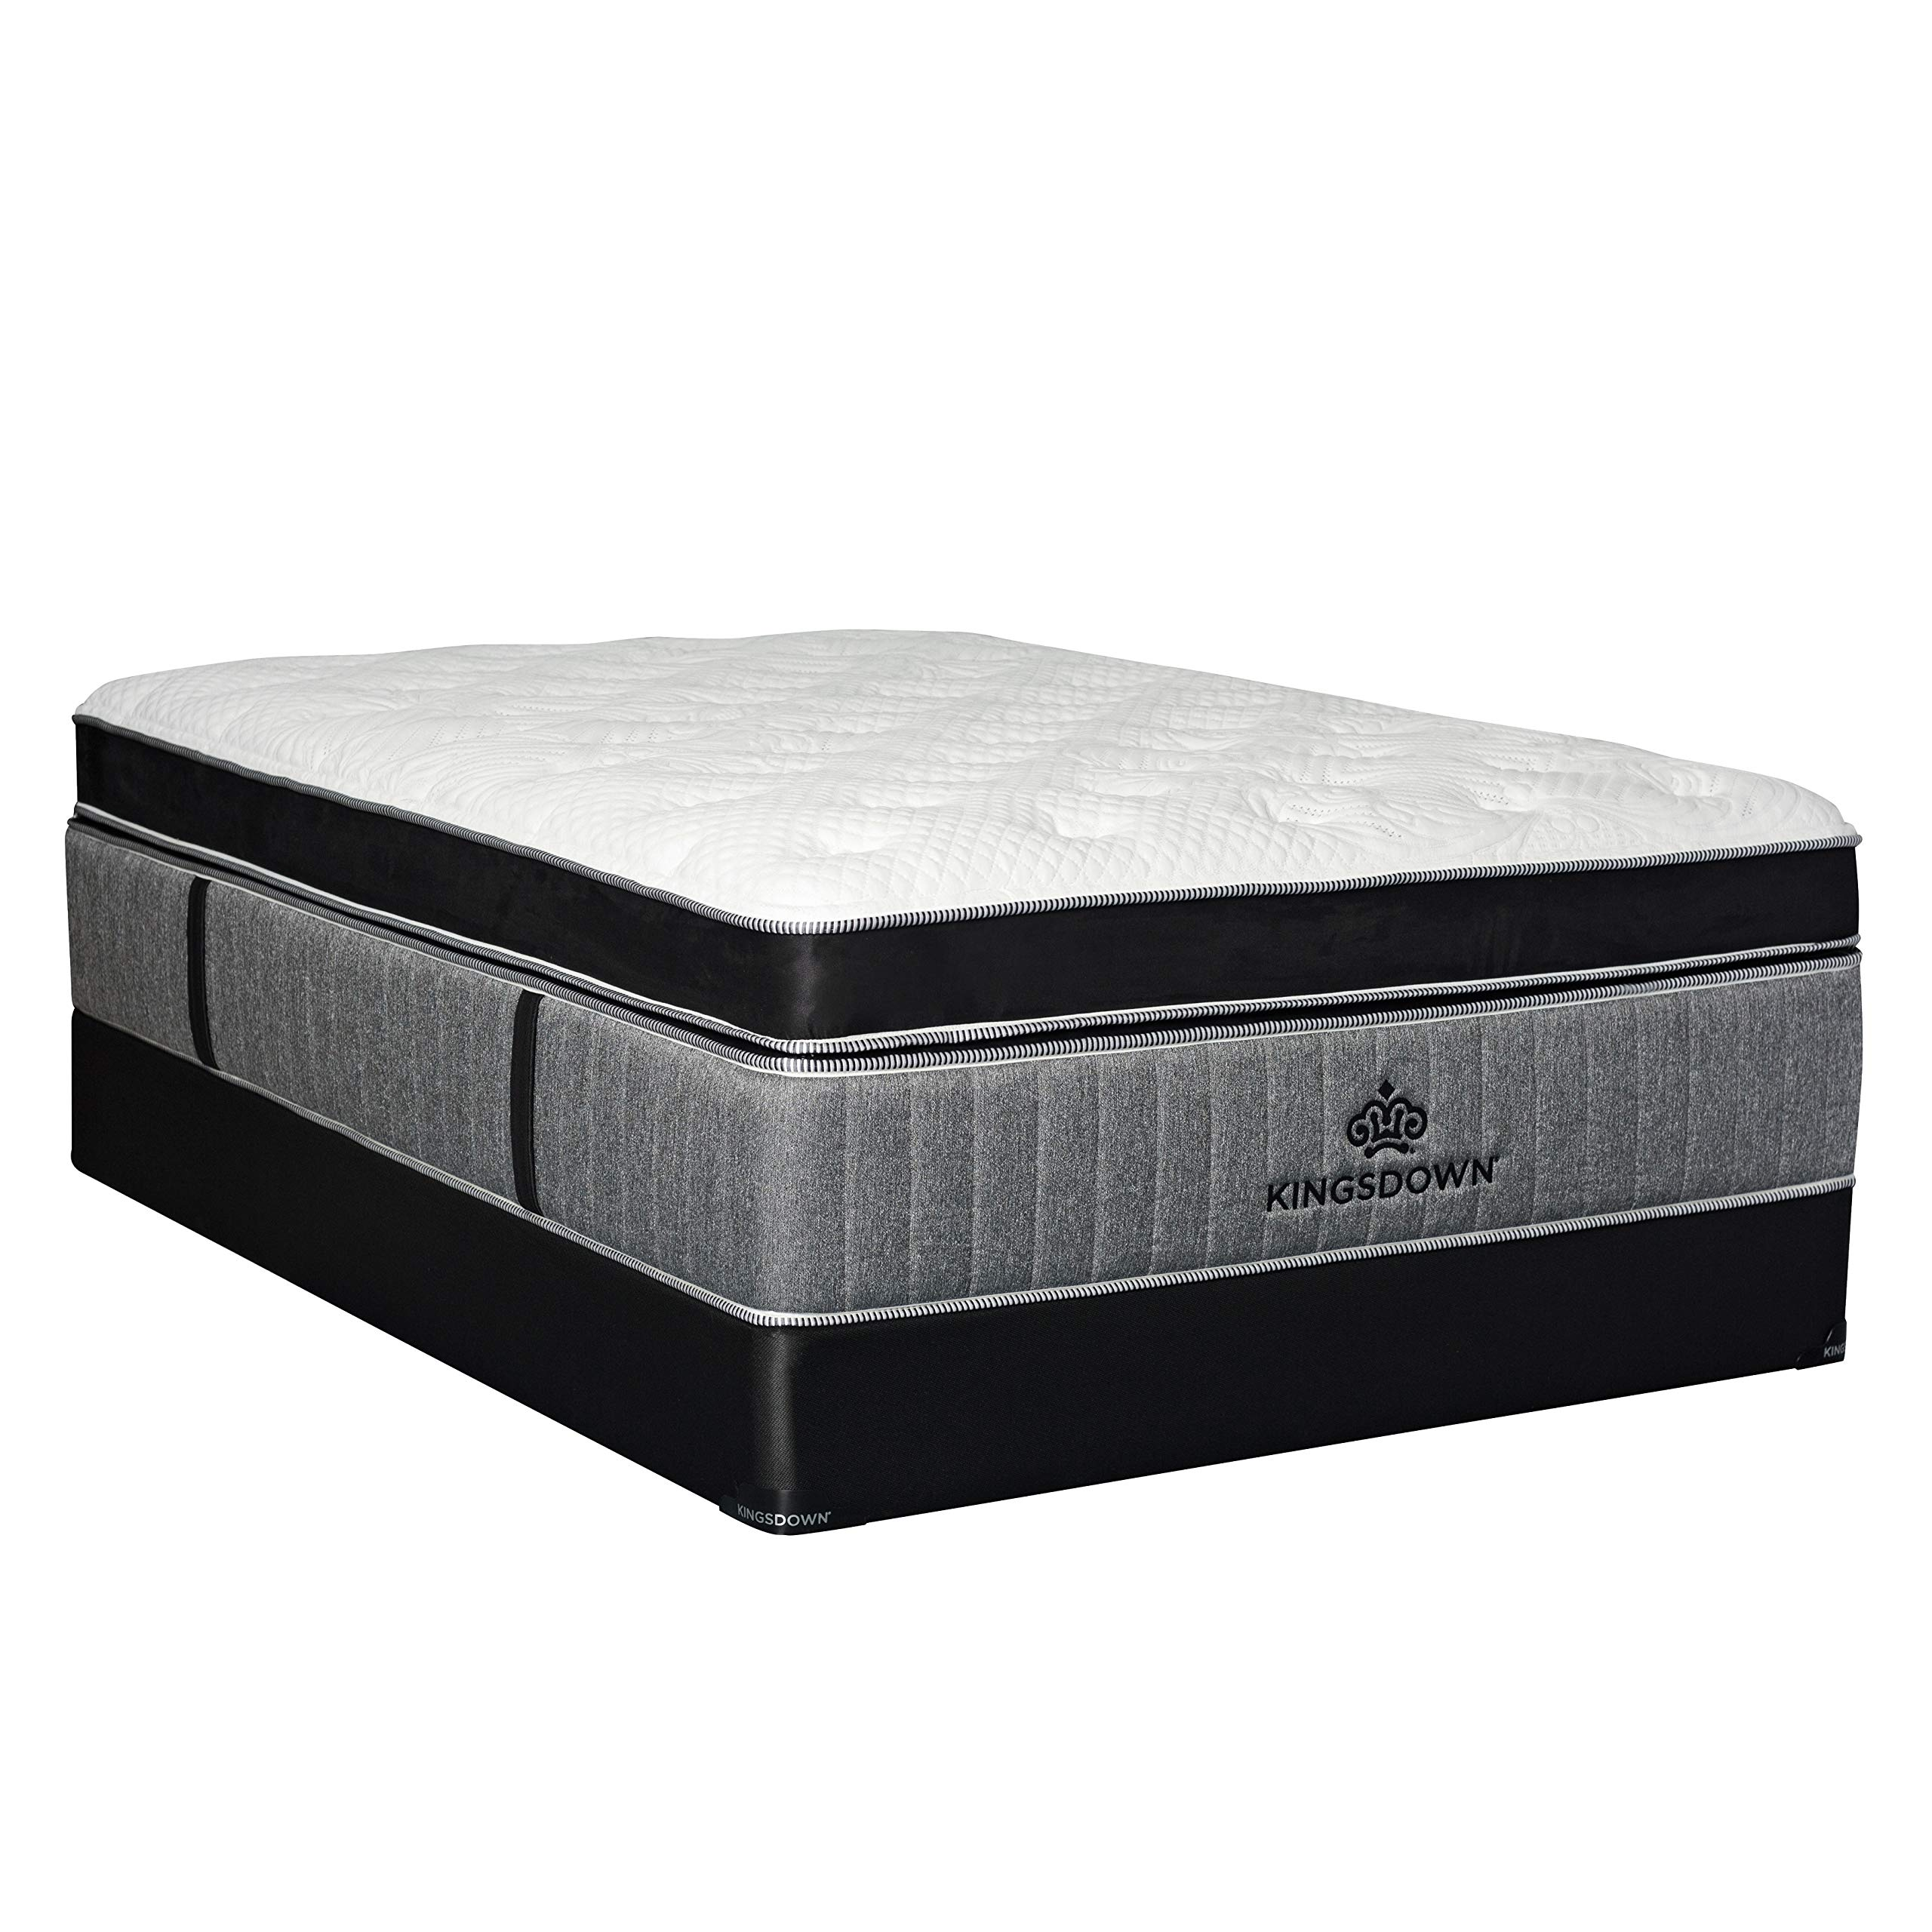 Kingsdown Passions Dynamo 17.5-inch Pillow Top Mattress Set Regular Profile Queen by Kingsdown